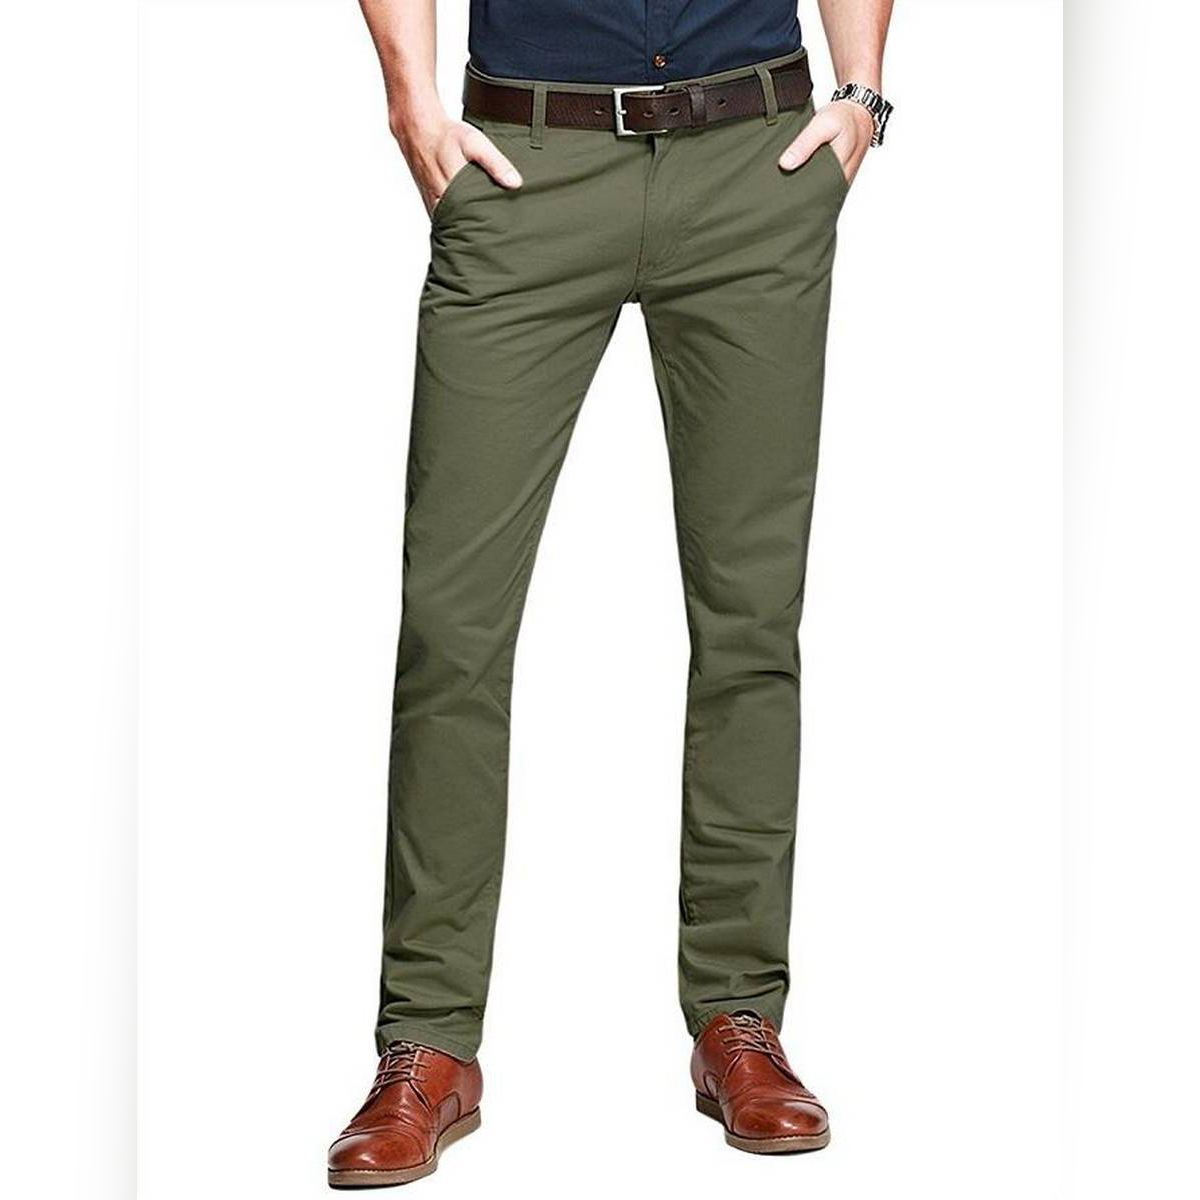 Men Chinos Cargo Casual Jeans Trousers Pants